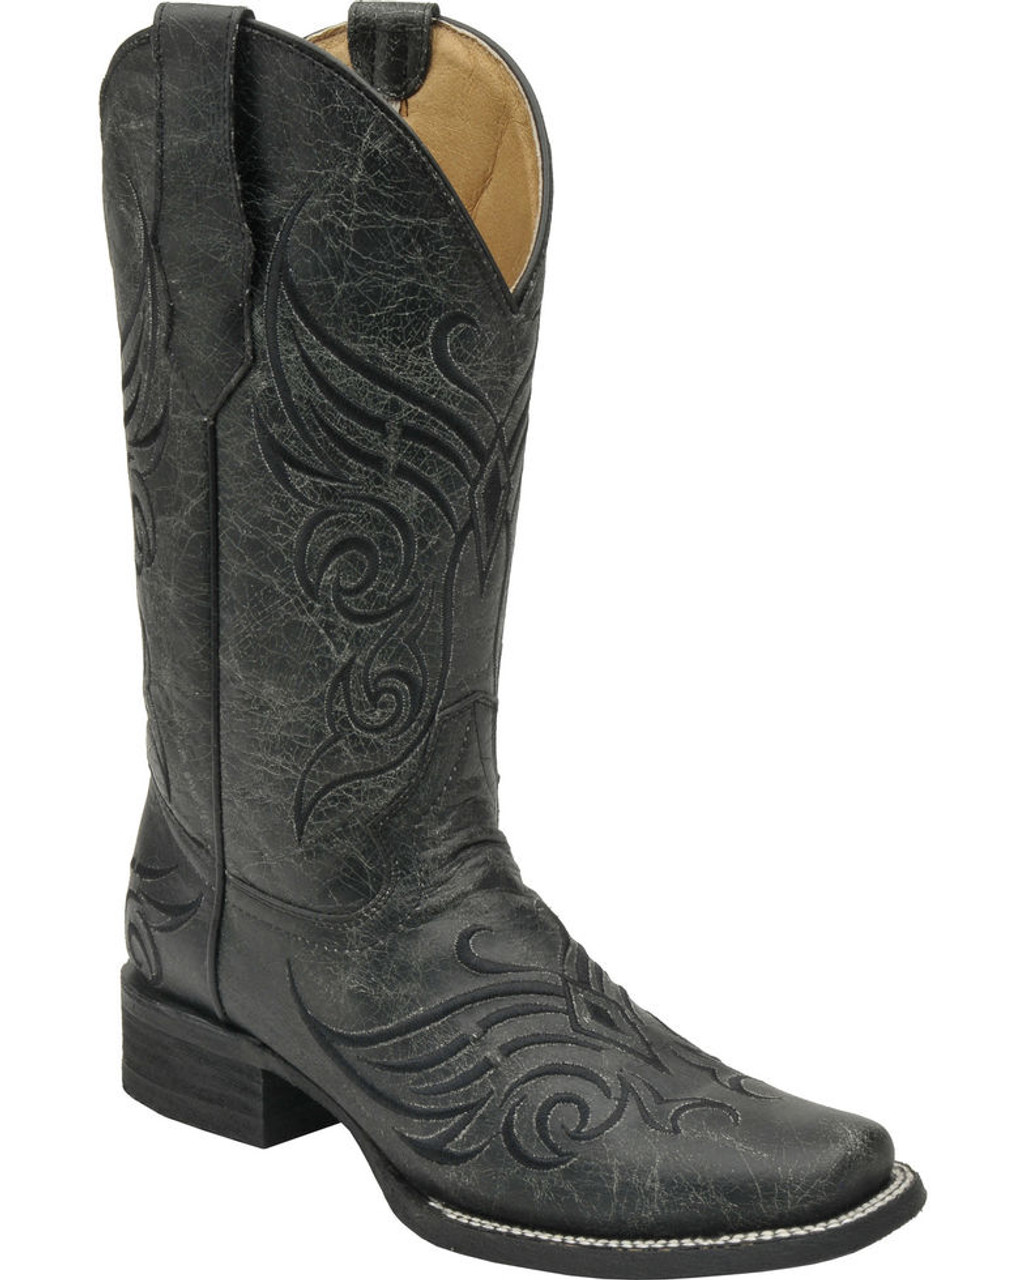 29e24b5150f Circle G Women's Crackle Cowgirl Boots - Square Toe